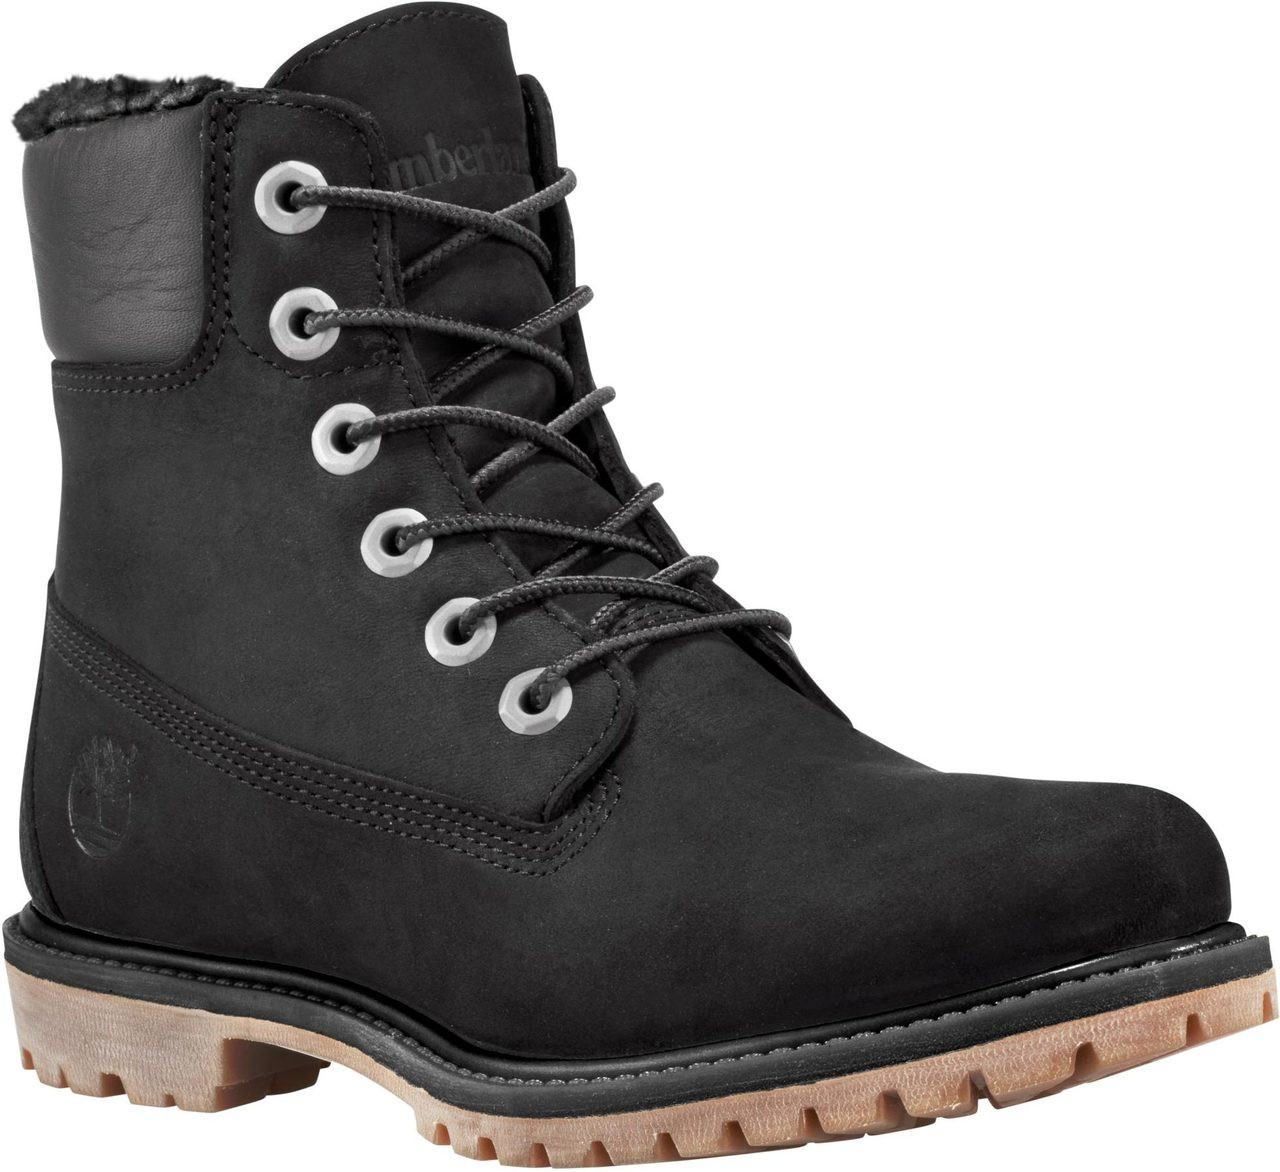 Lastest Timberland Womenu0026#39;s Glancy Lace-up Leather Heeled Boots - Black | FREE UK Delivery | Allsole